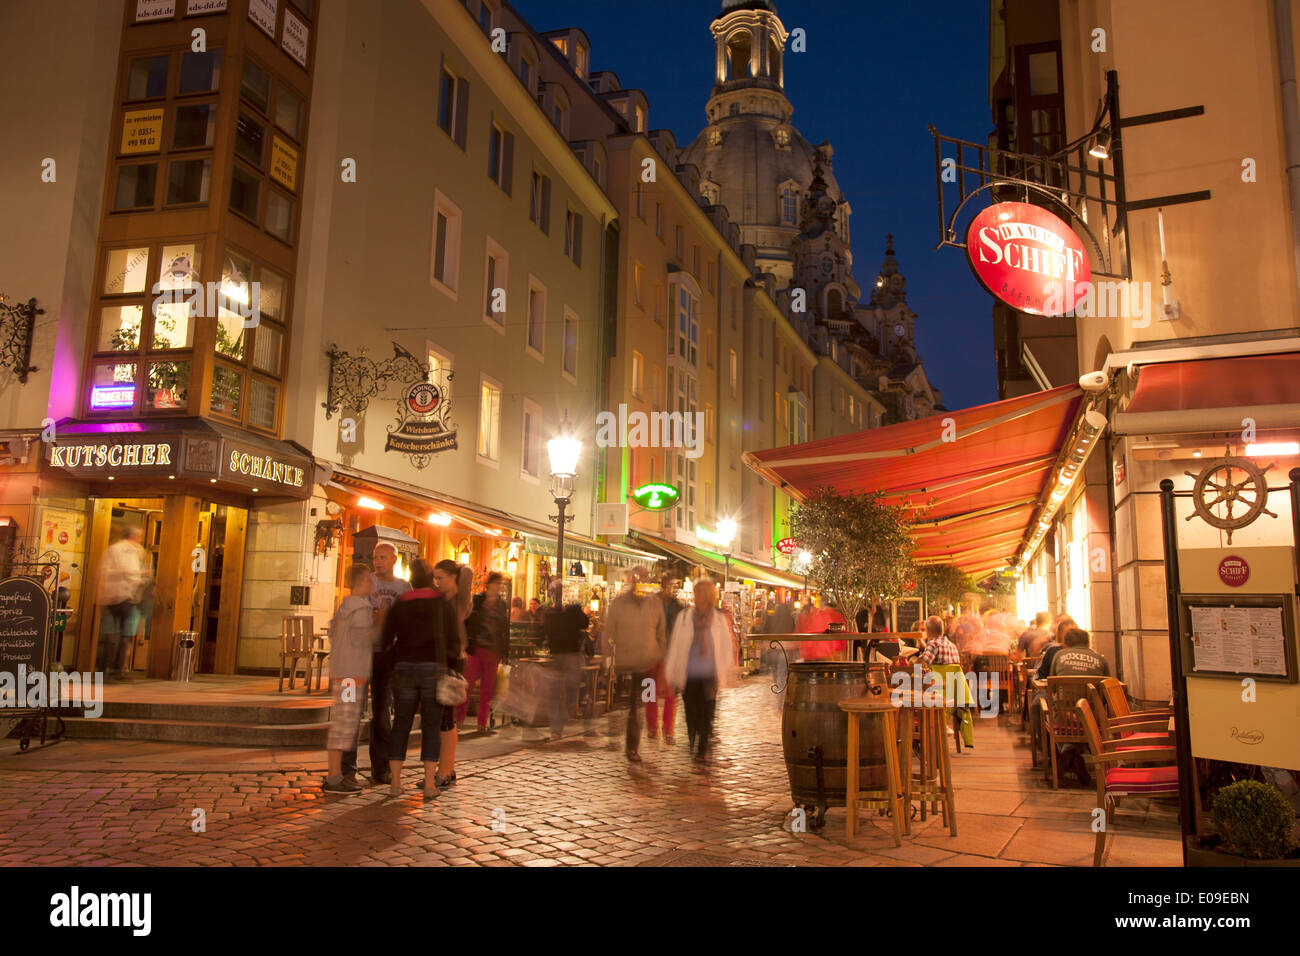 Restaurant In Münzgasse Stock Photos & Restaurant In Münzgasse Stock ...